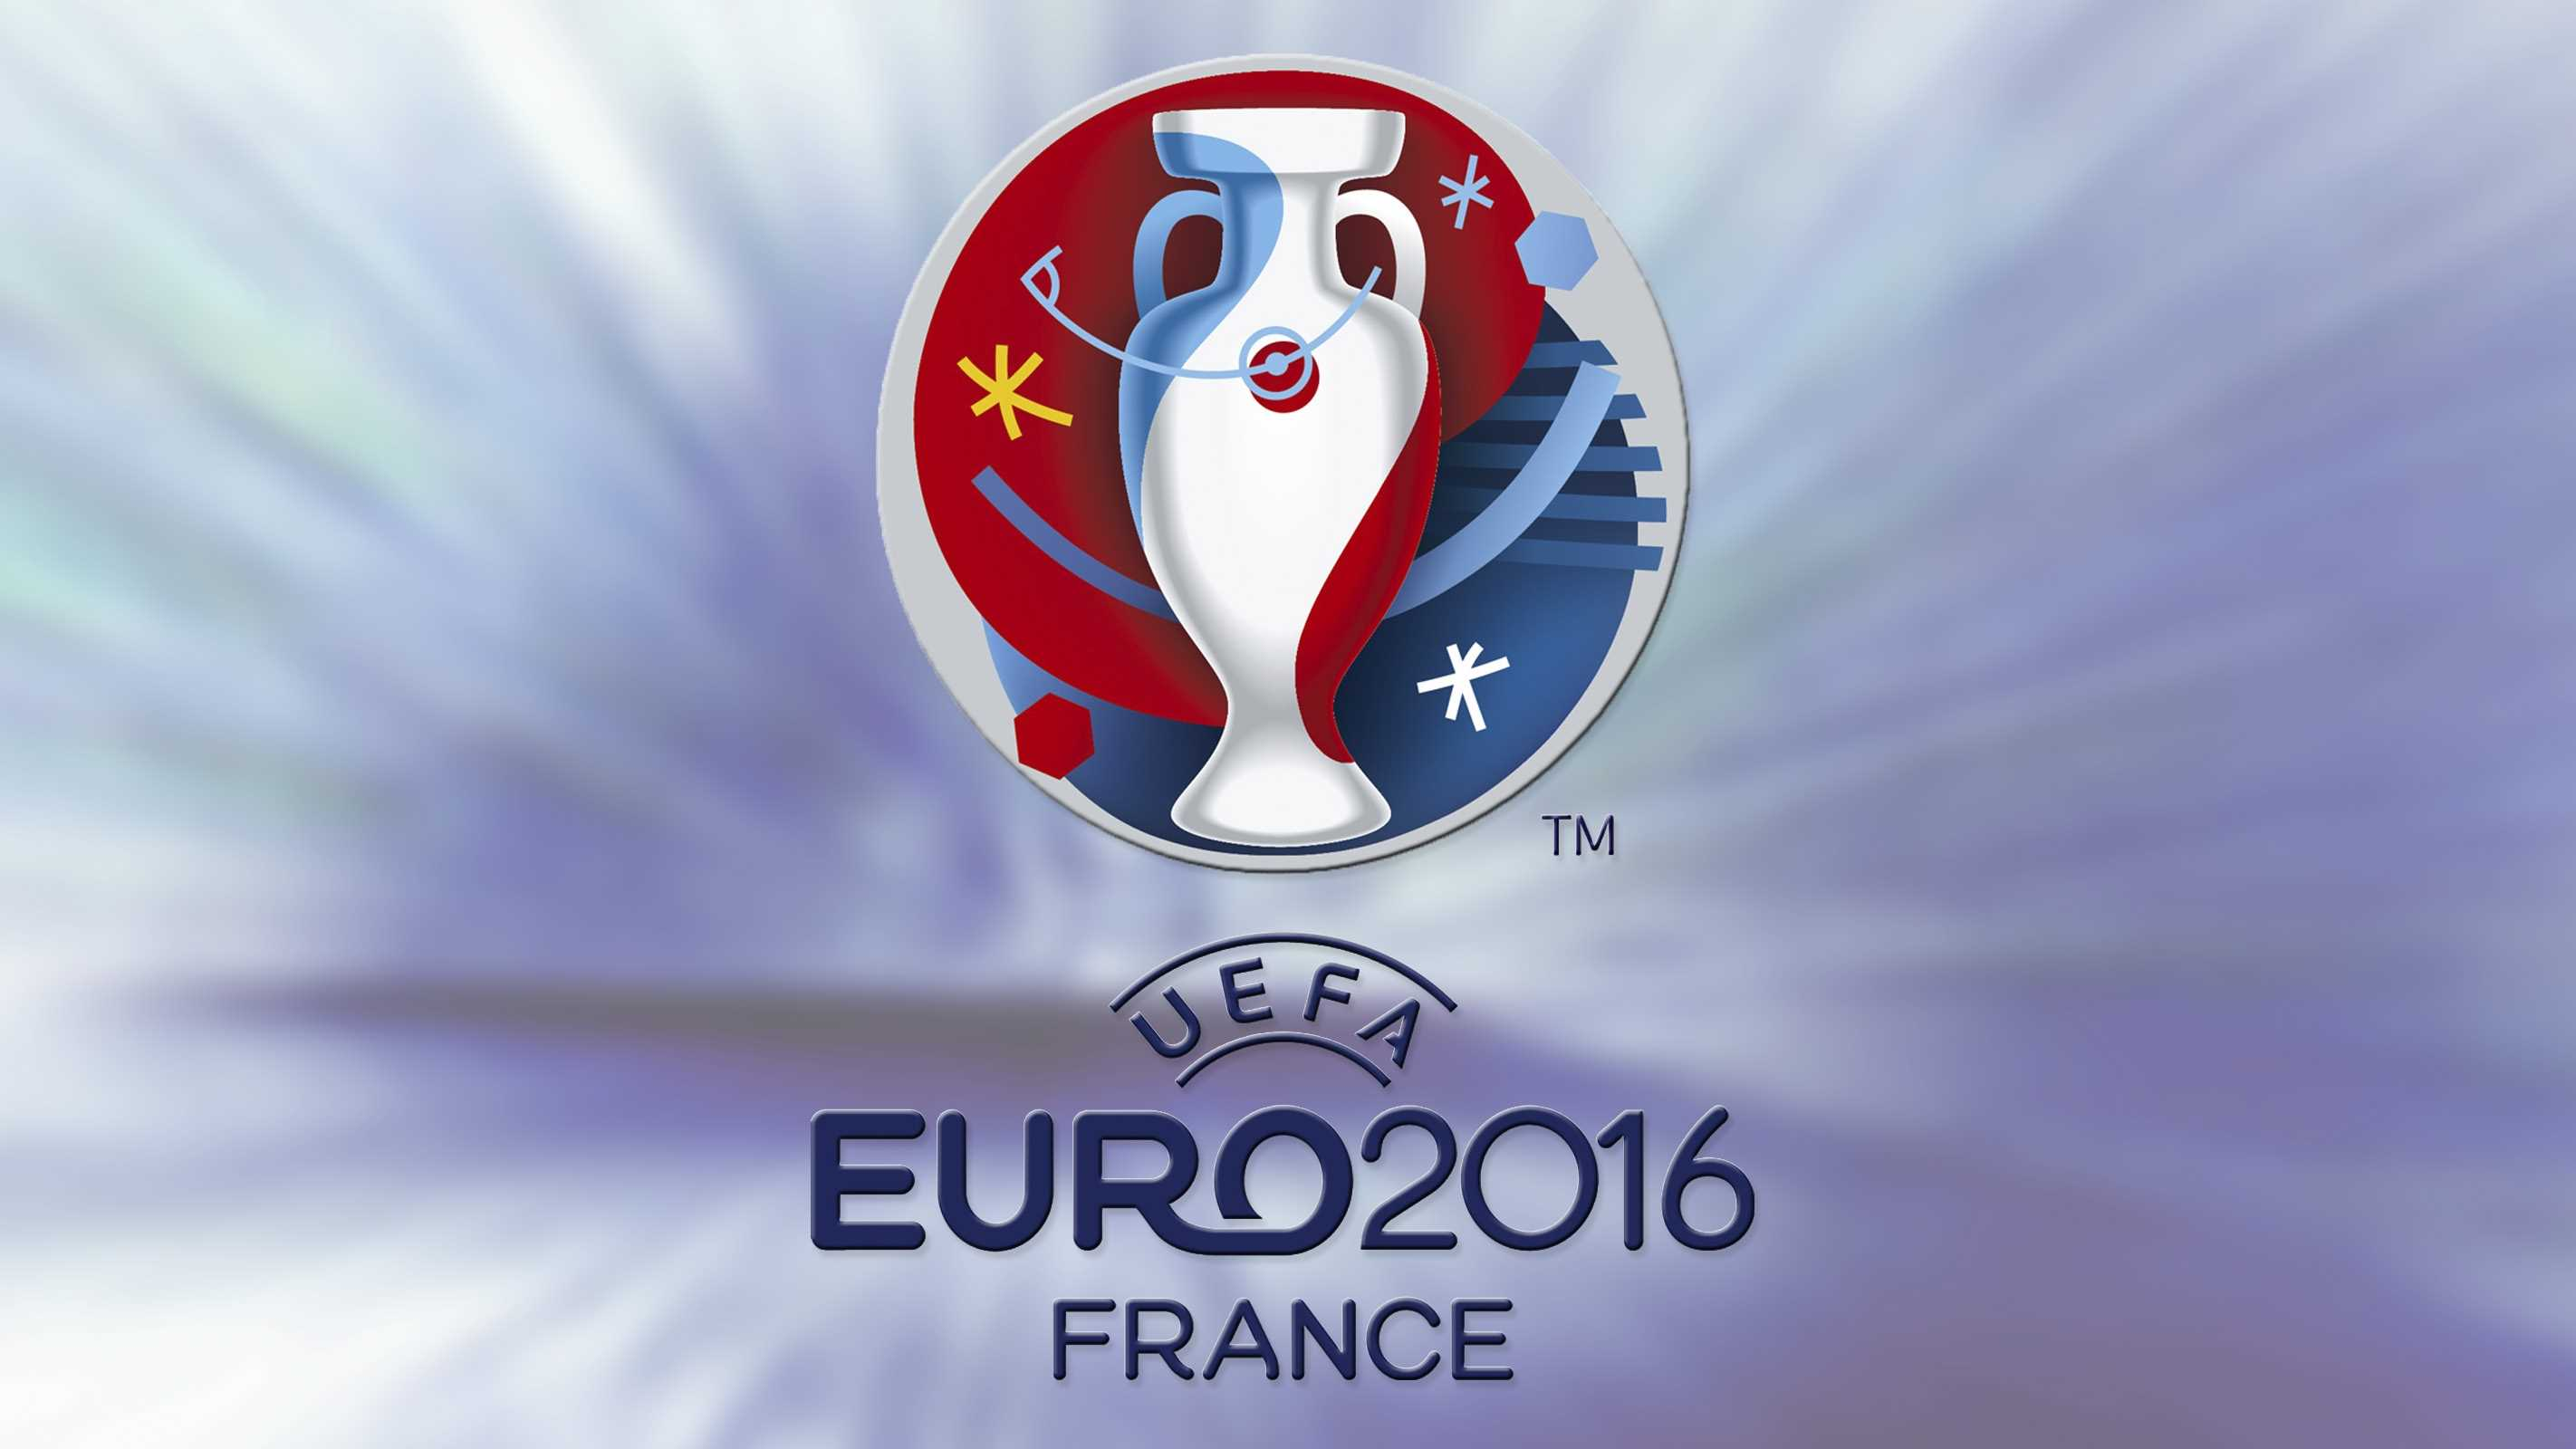 Who will win the Euro 2016? - netivist